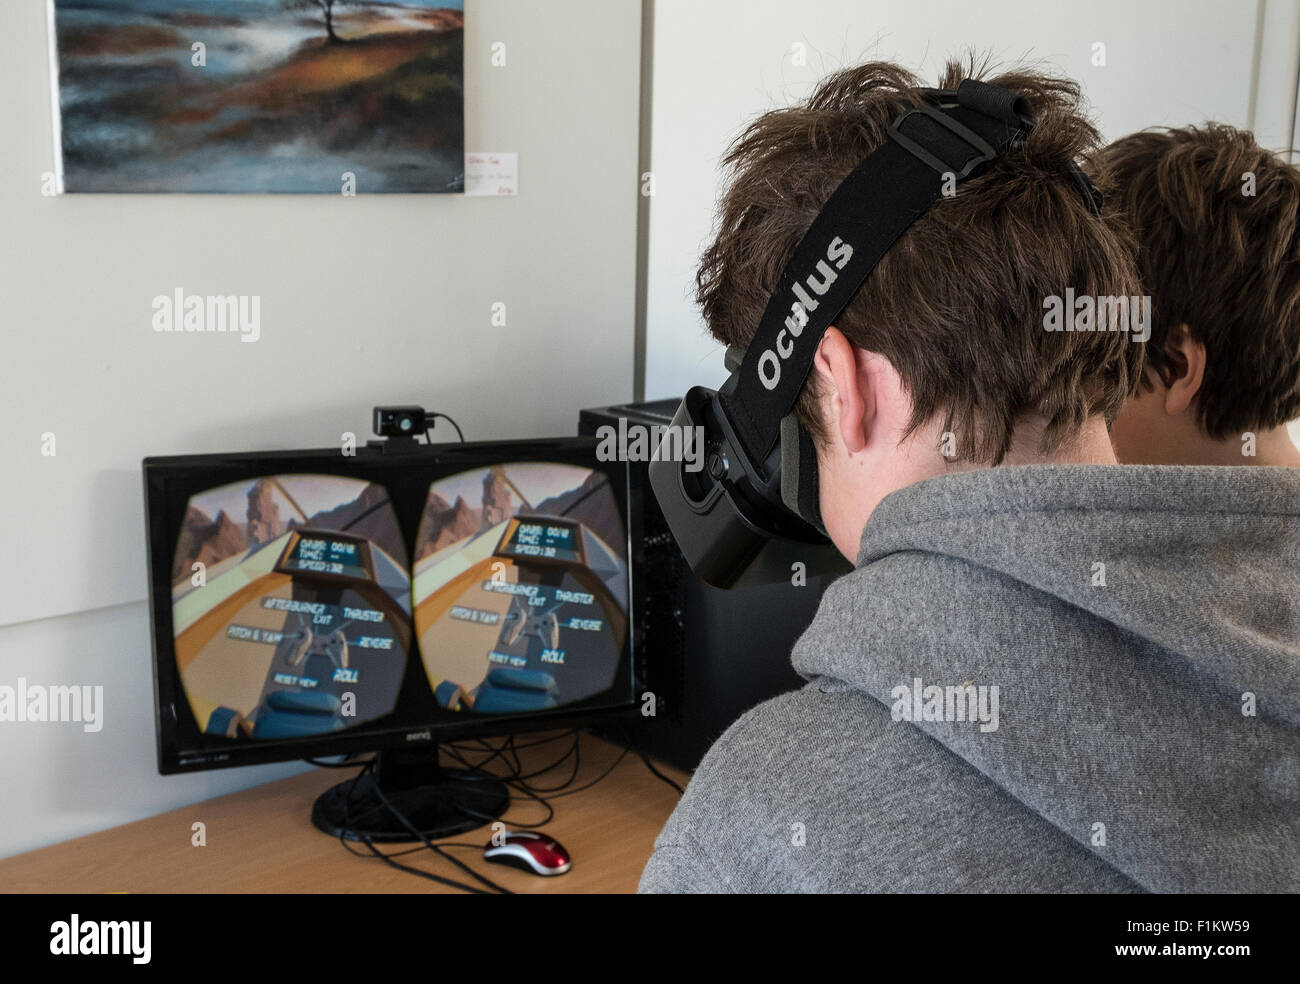 Oculus Rift Game Stock Photos & Oculus Rift Game Stock